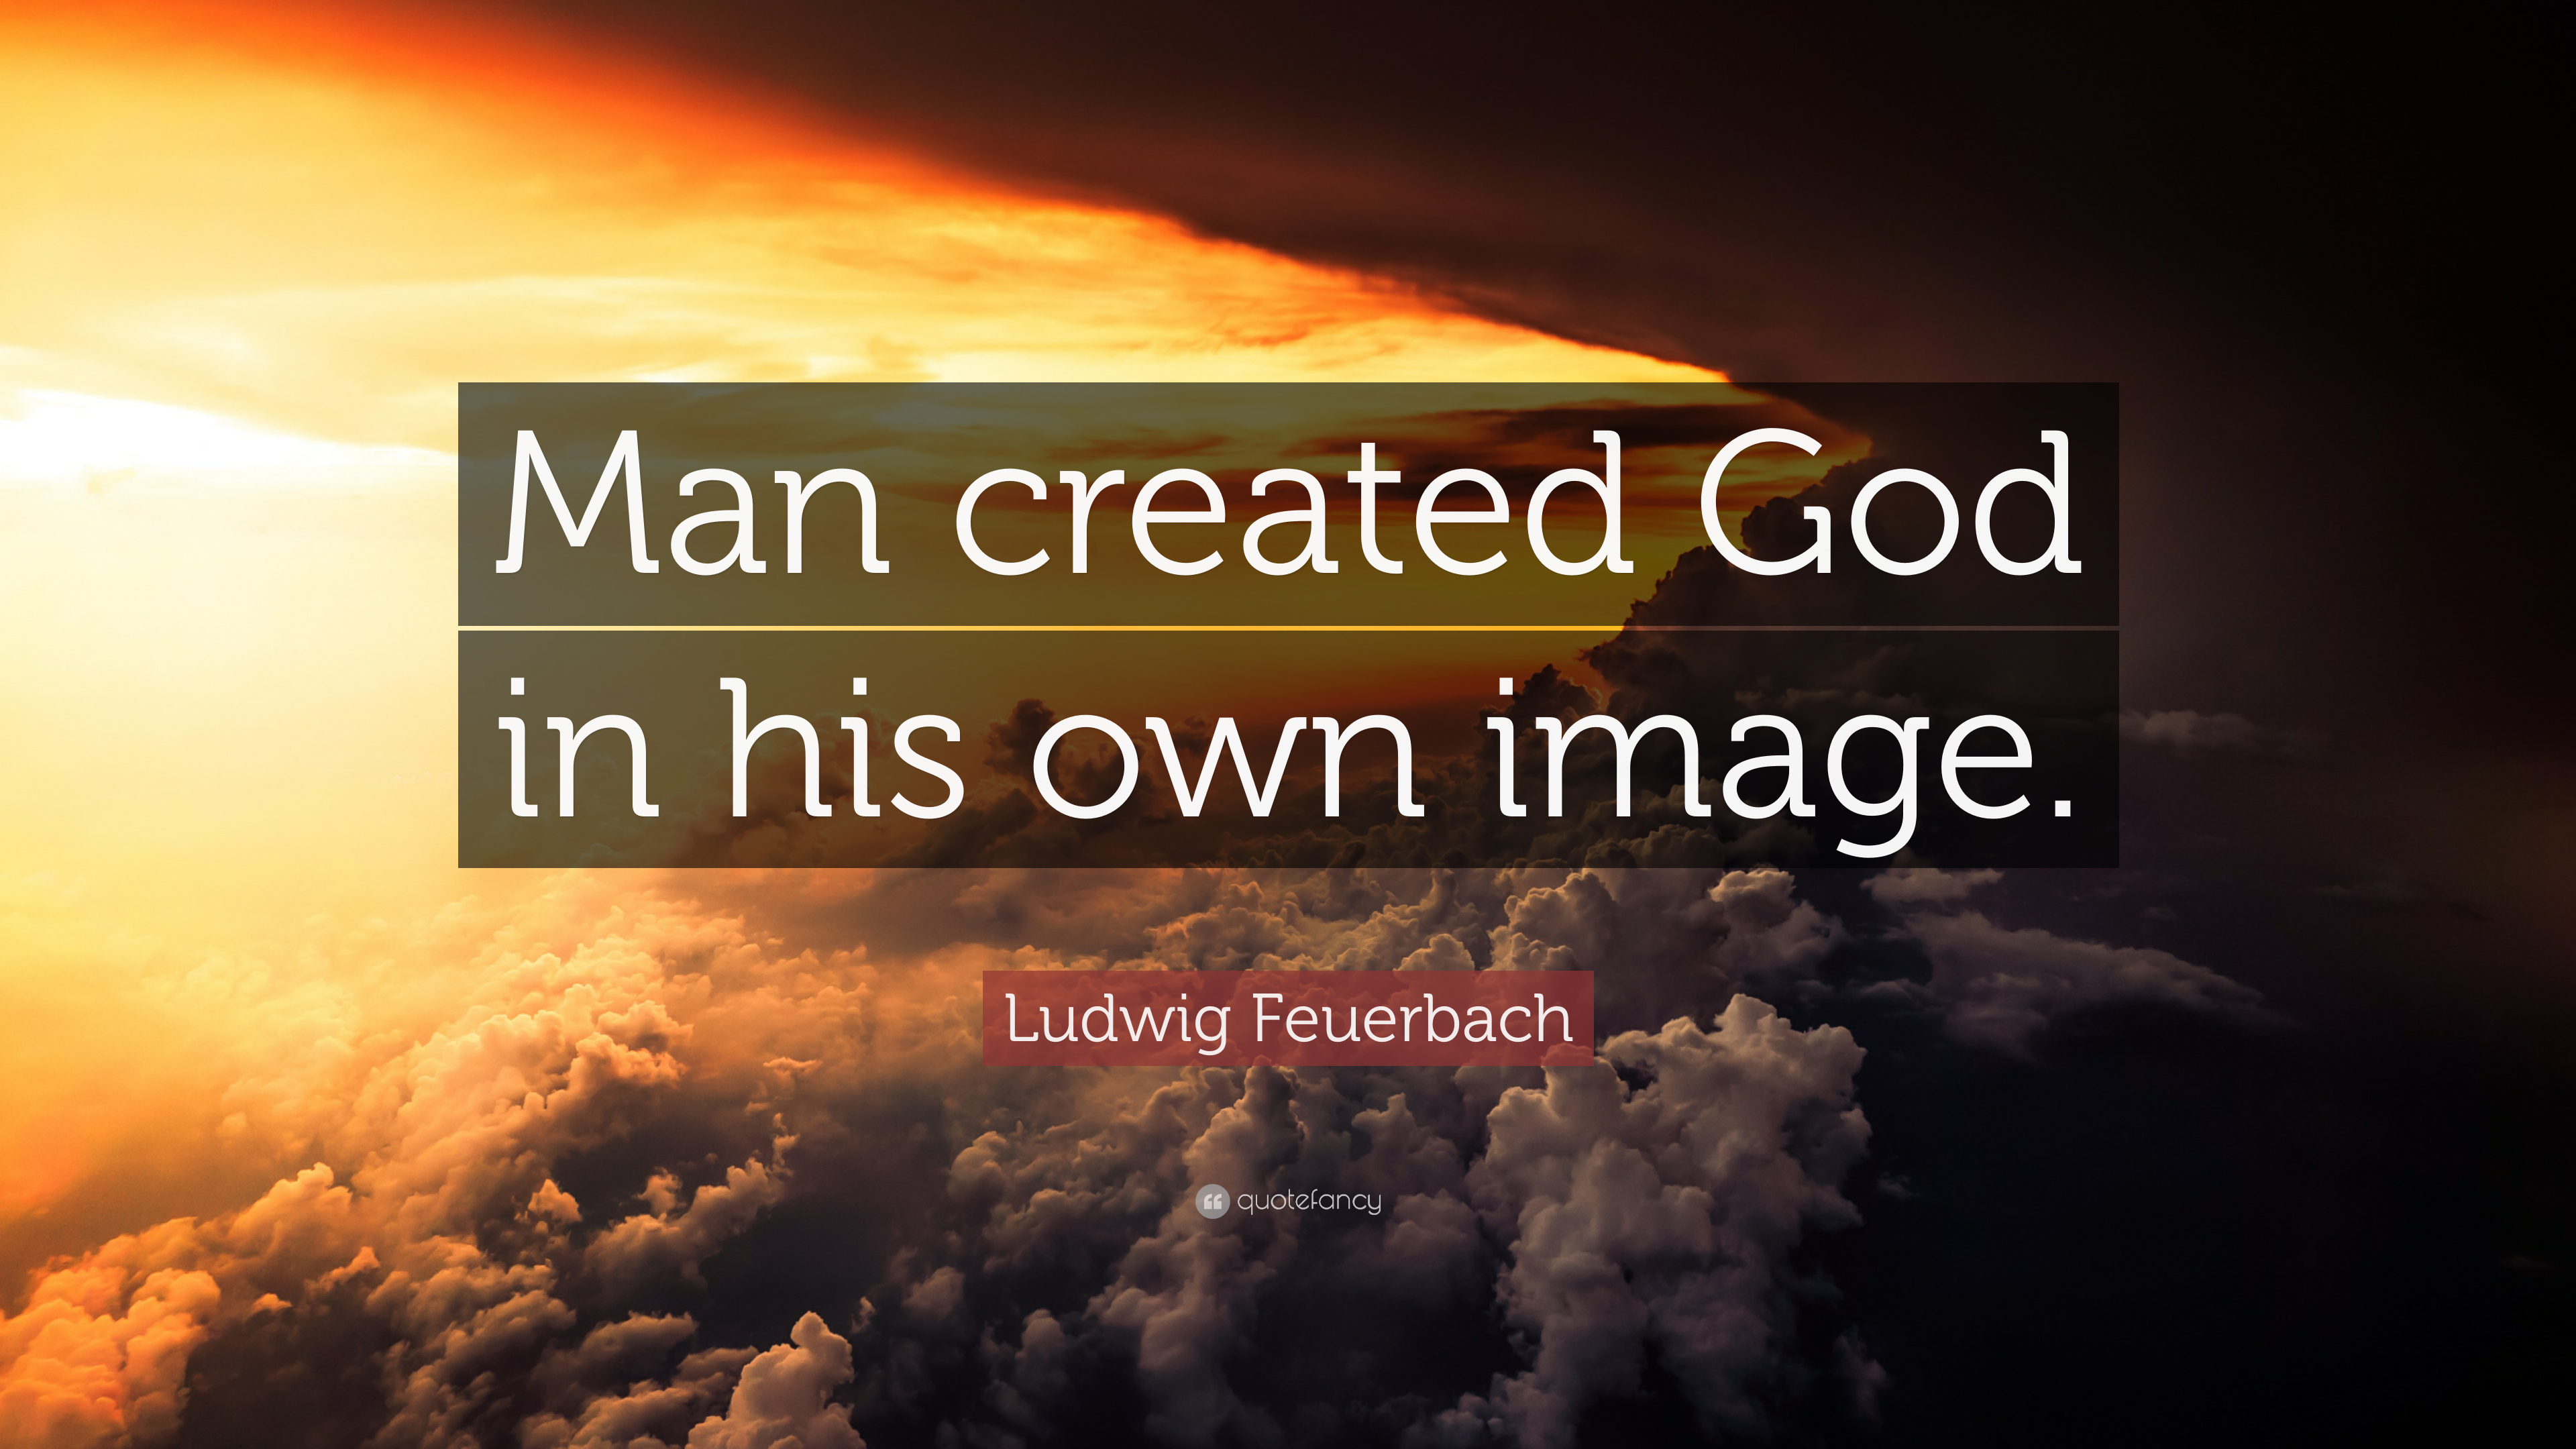 Swami Vivekananda Quotes Wallpaper Ludwig Feuerbach Quote Man Created God In His Own Image